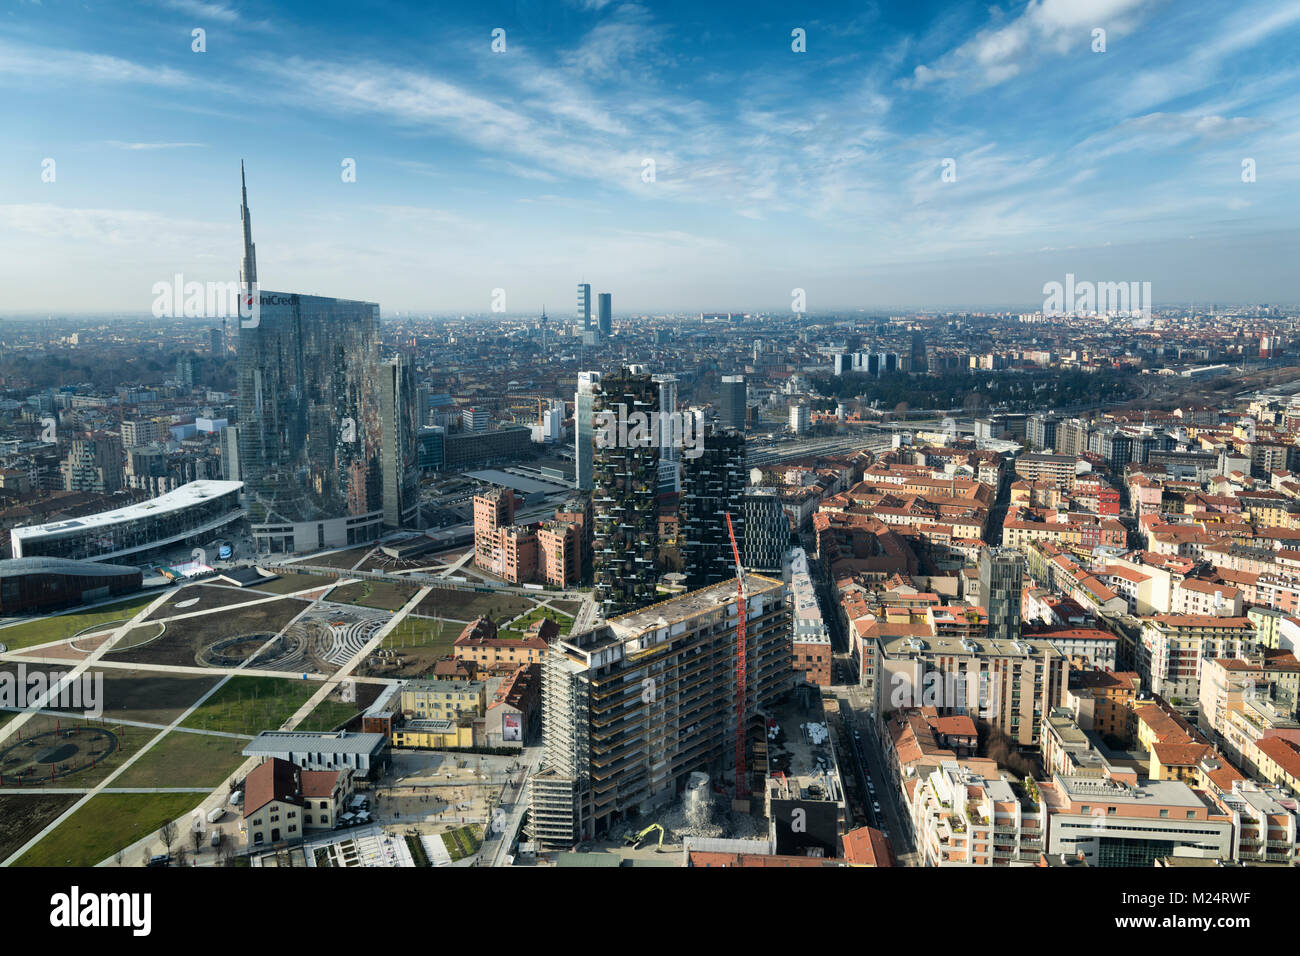 Milan skyline and view of Porta Nuova business district in Italy - Stock Image